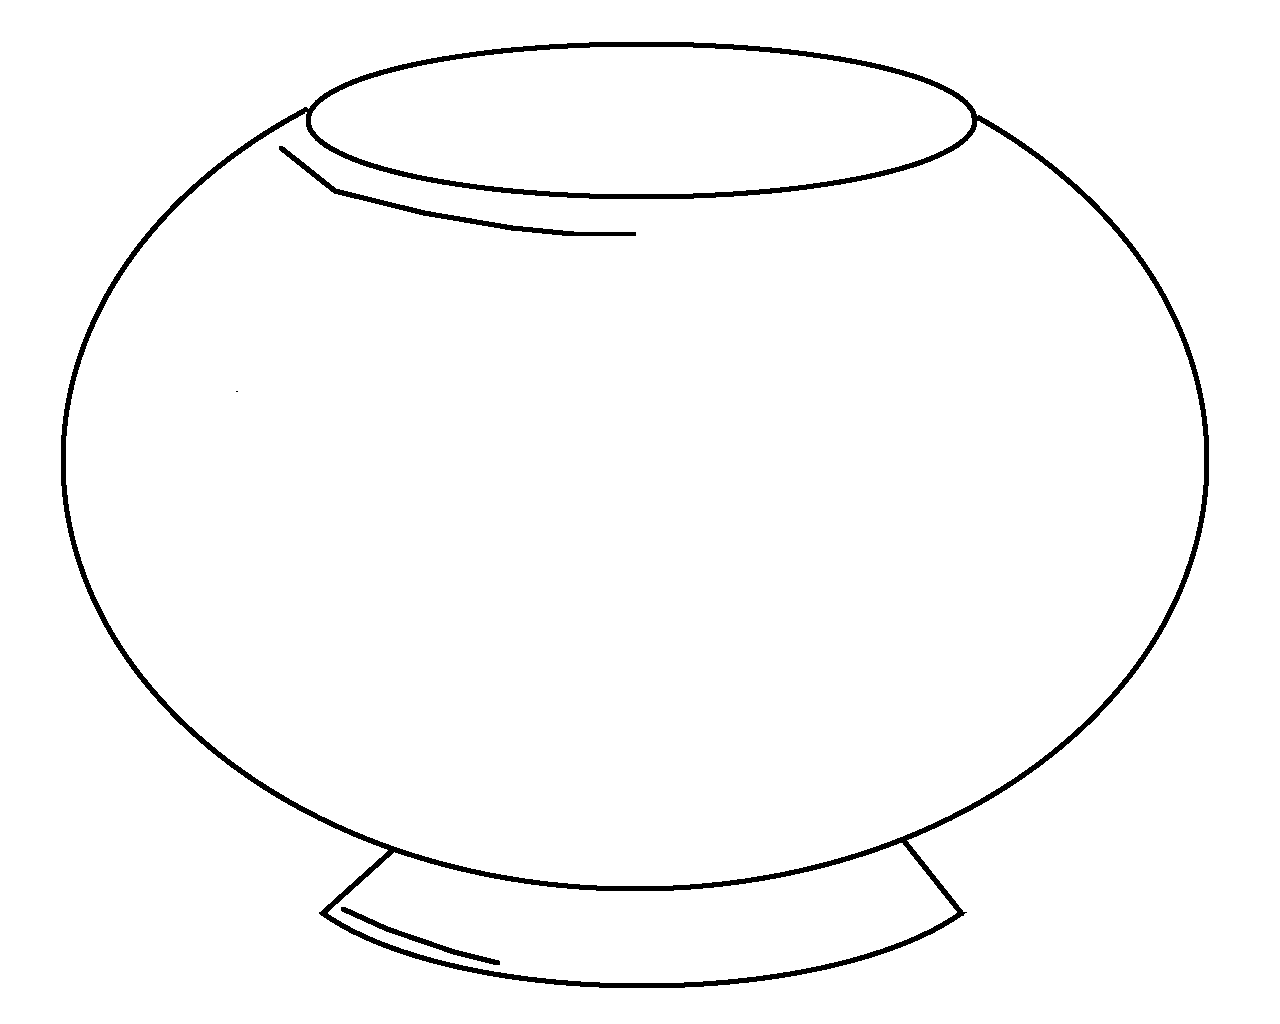 Decoration clipart fish bowl Coloring Empty use to bowl